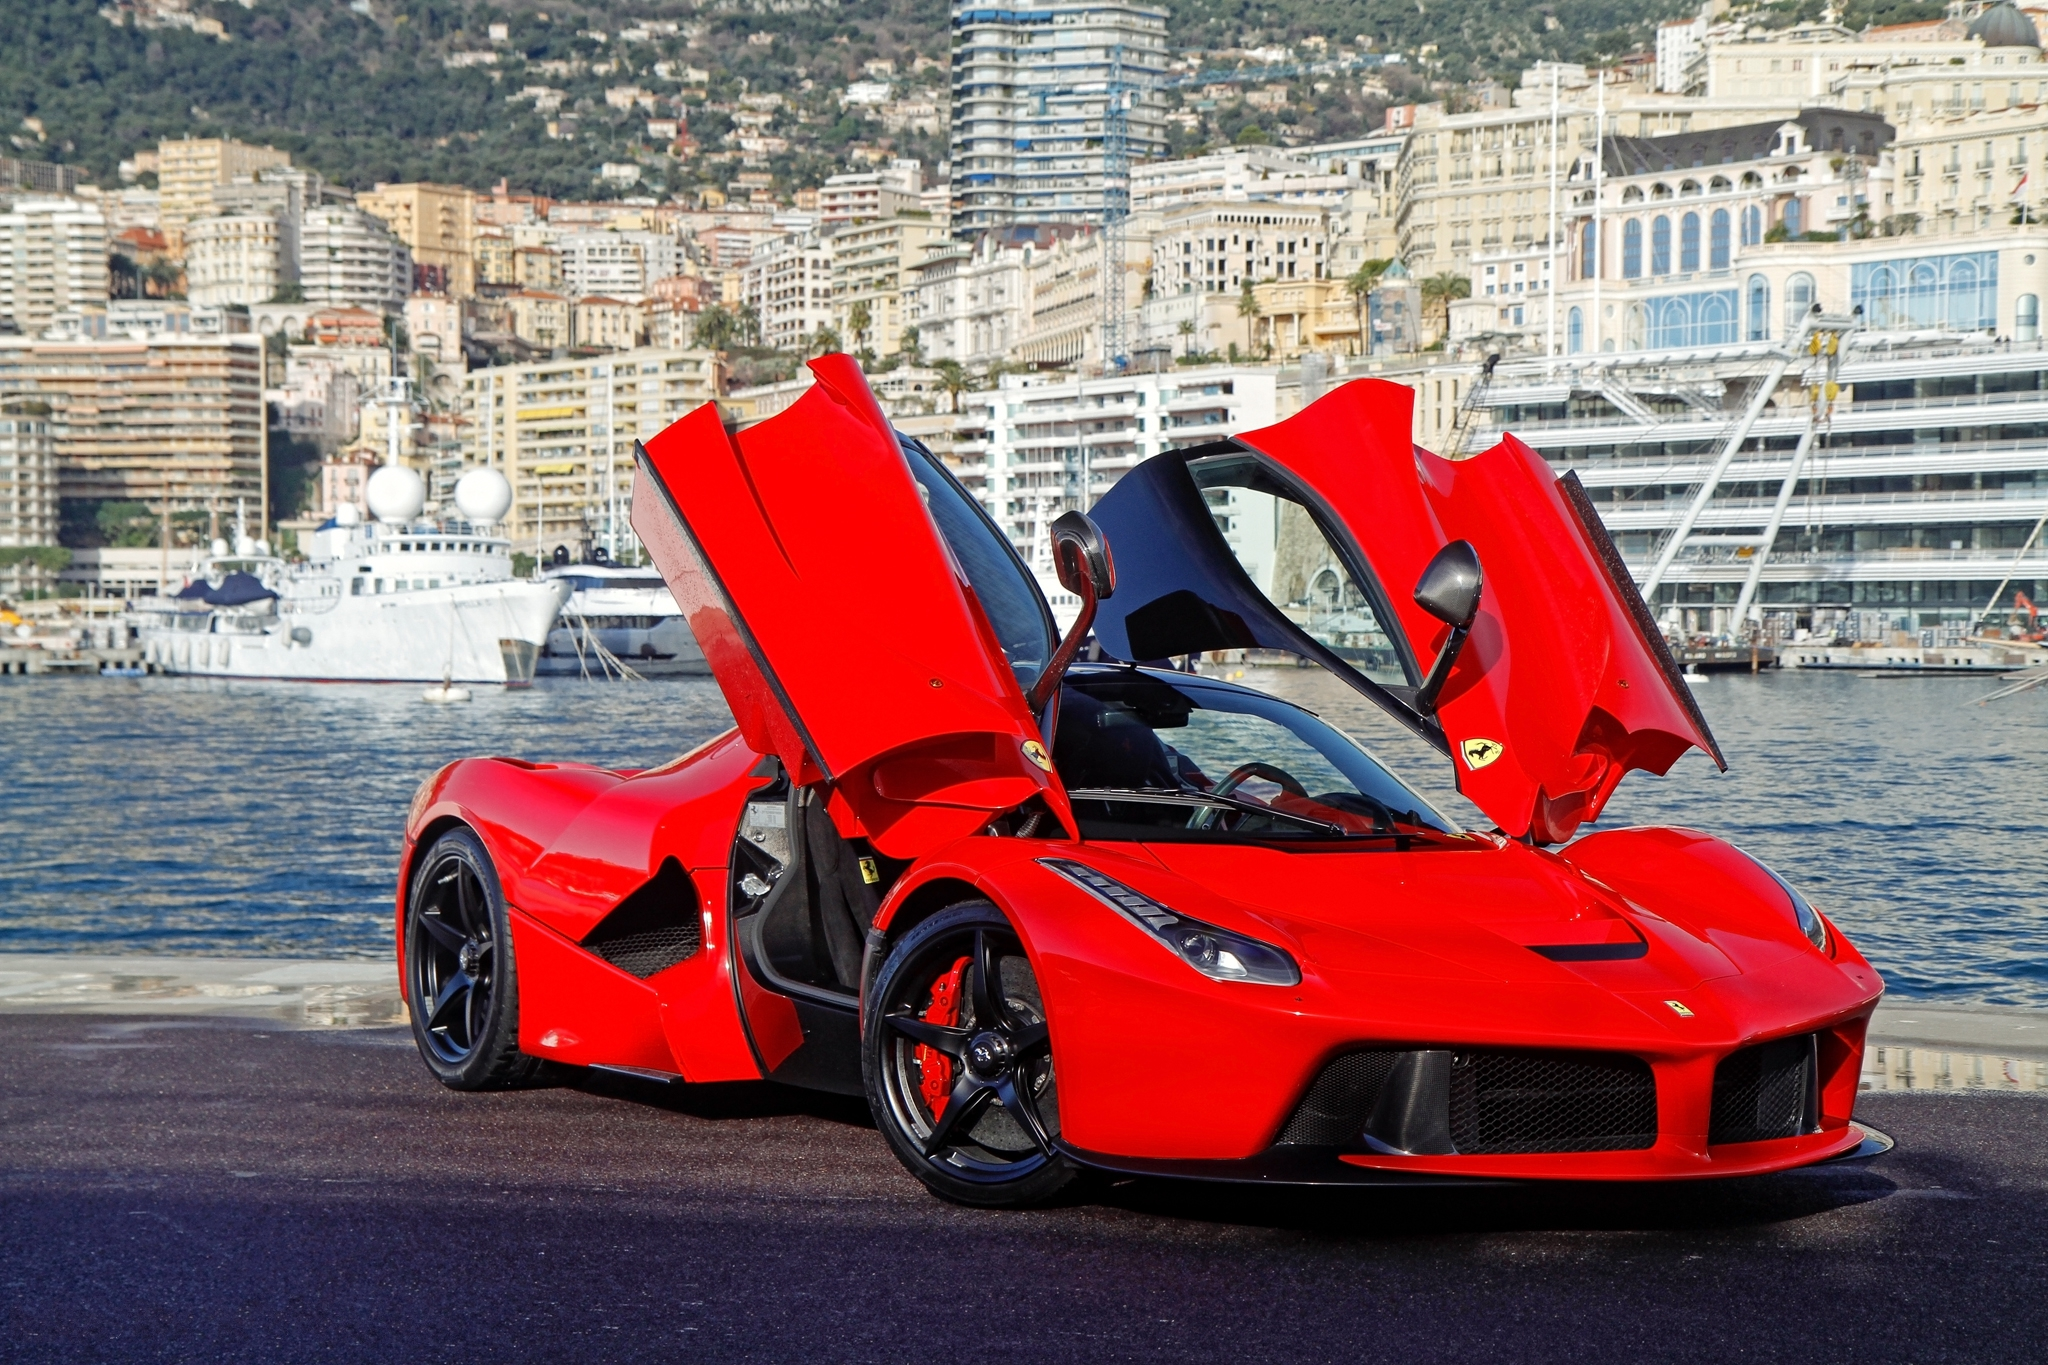 wallpaper.wiki-Ferrari-Laferrari-Backgrounds-HD-PIC-WPB005116 ...